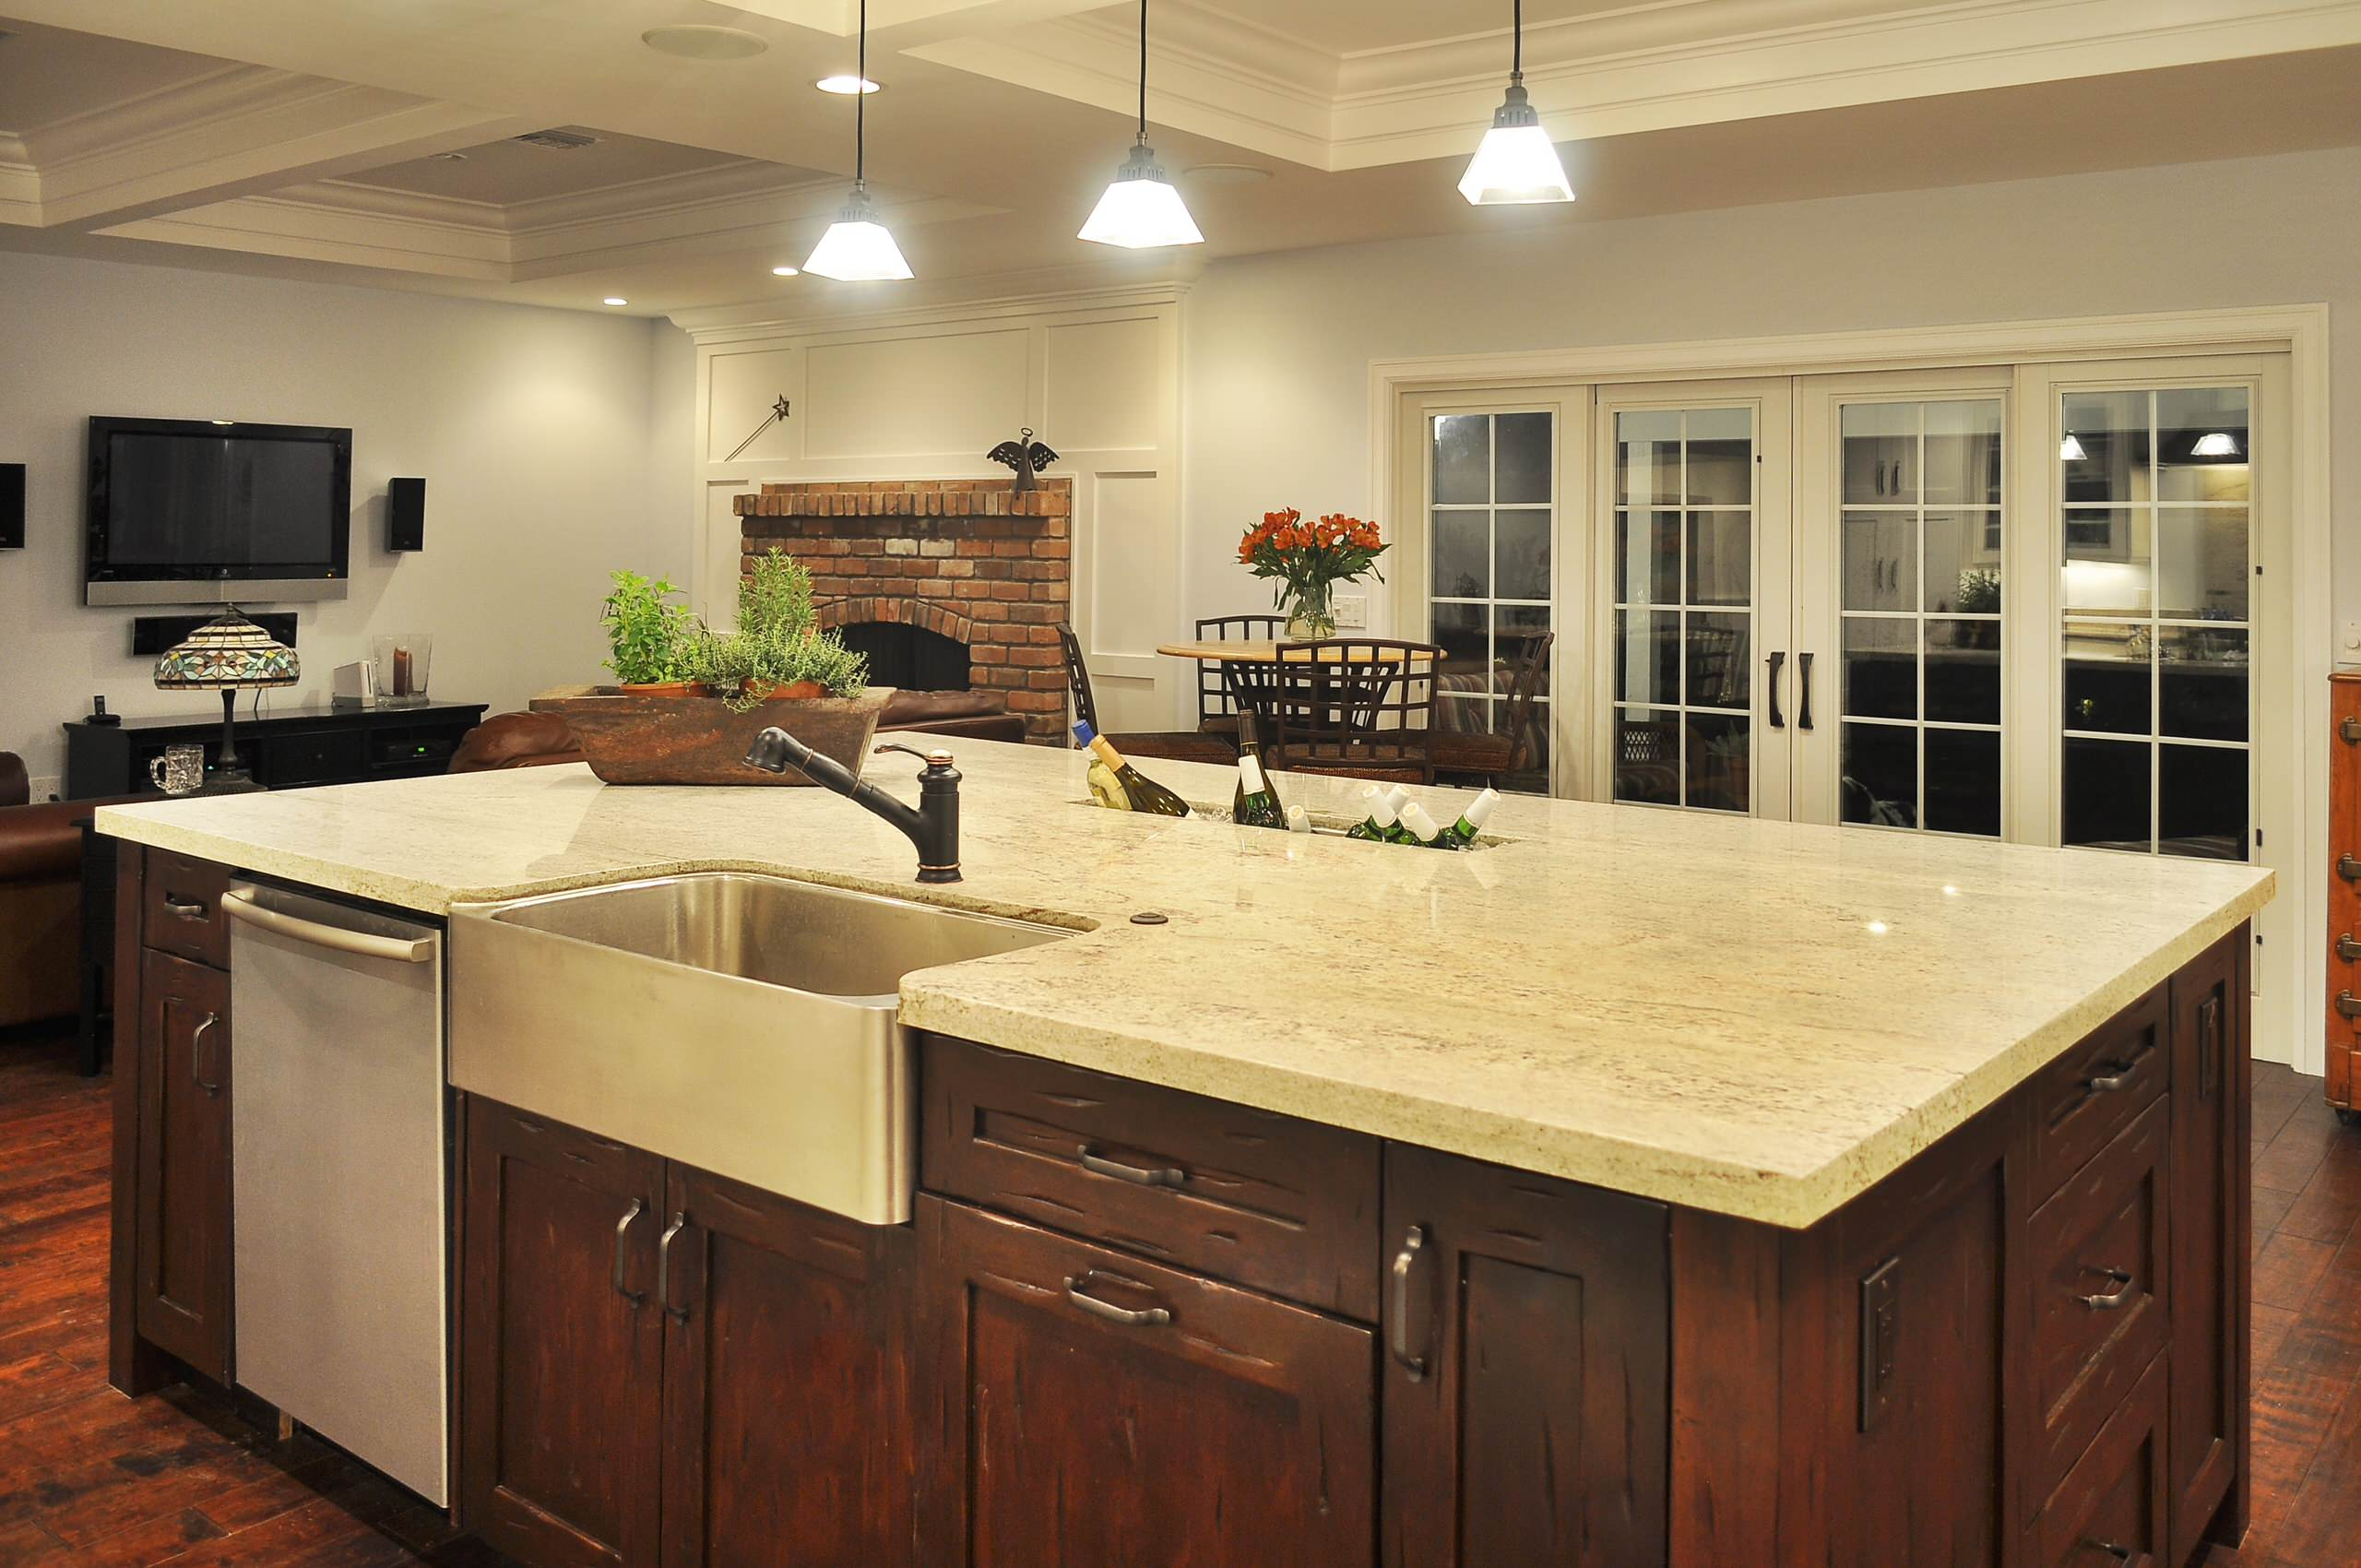 Inspiring Kitchen Decor plus Apron Sink Ideas: Brick Fireplace Surround For Kitchen Design Ideas With Ceiling Lighting And Coffered Ceiling Plus Dark Wood Cabinets Also Apron Sink With Kitchen Hardware Also Pendant Lighting